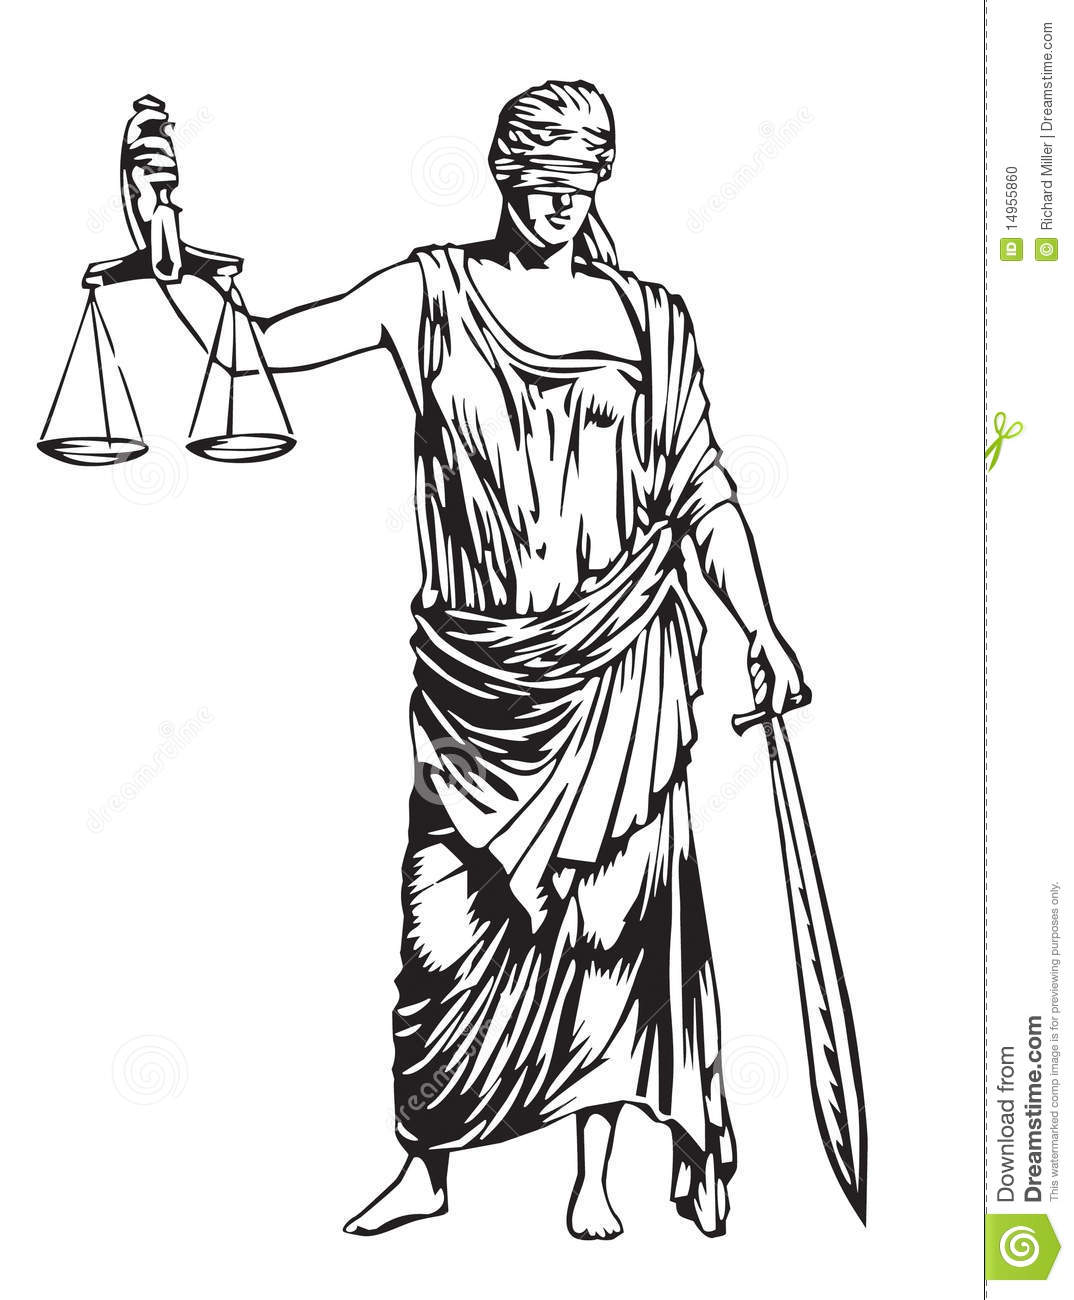 Blind Justice Stock Photo